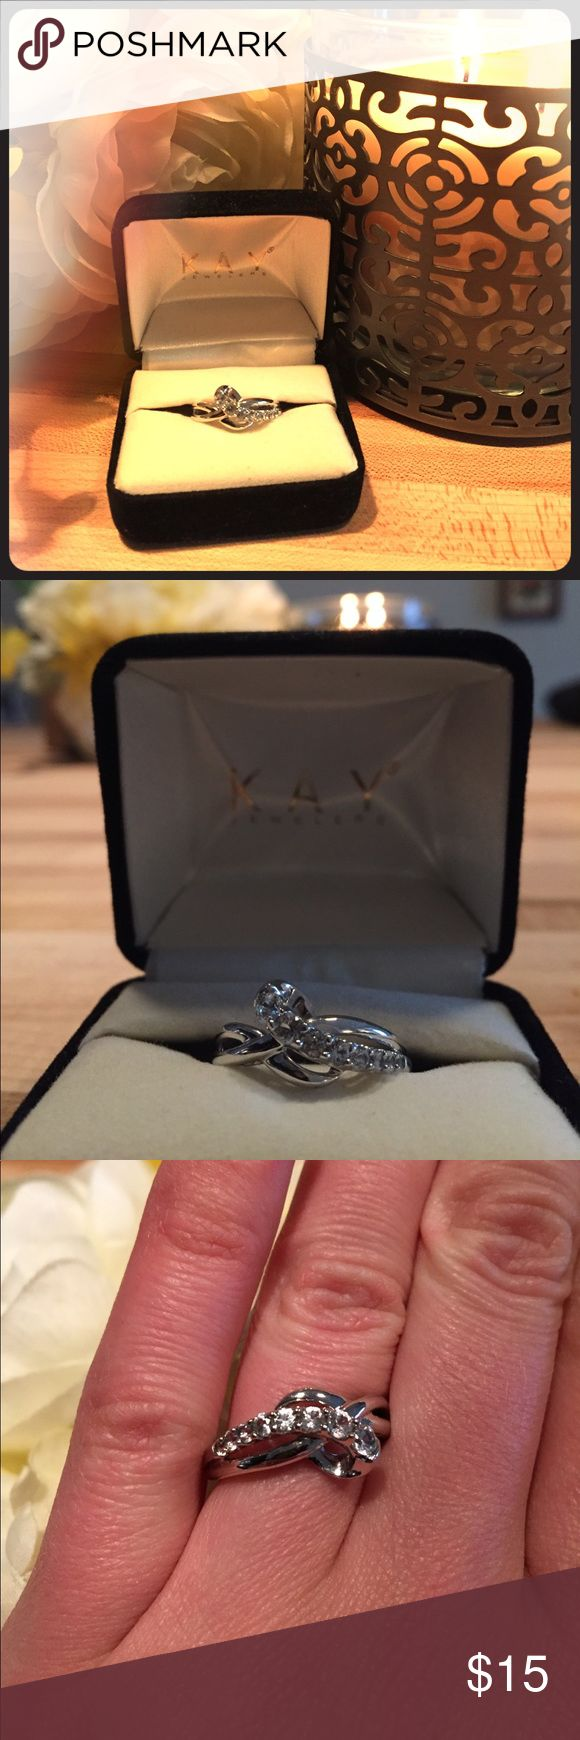 """Ring - Kay Jewelers Beautiful women's cubic zirconia and sterling silver ring. Perfect for an engagement or wedding band, anniversary gift or just to say """"I love you"""". Kay Jewelers Jewelry Rings"""